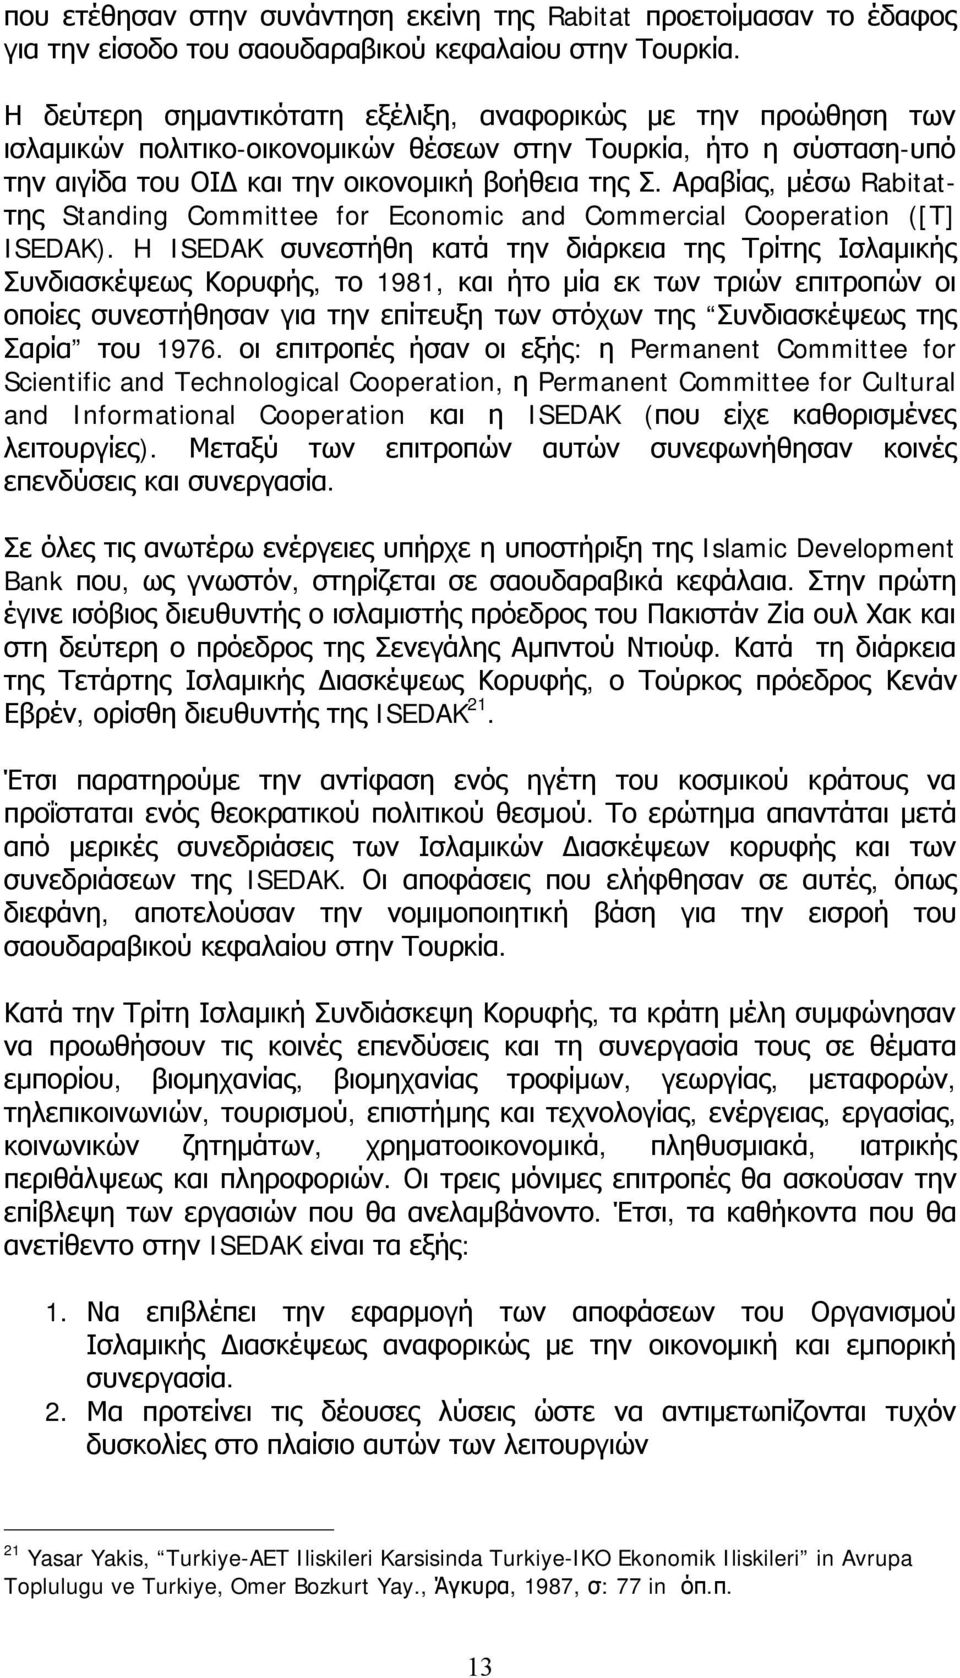 Αραβίας, μέσω Rabitatτης Standing Committee for Economic and Commercial Cooperation ([T] ISEDAK).